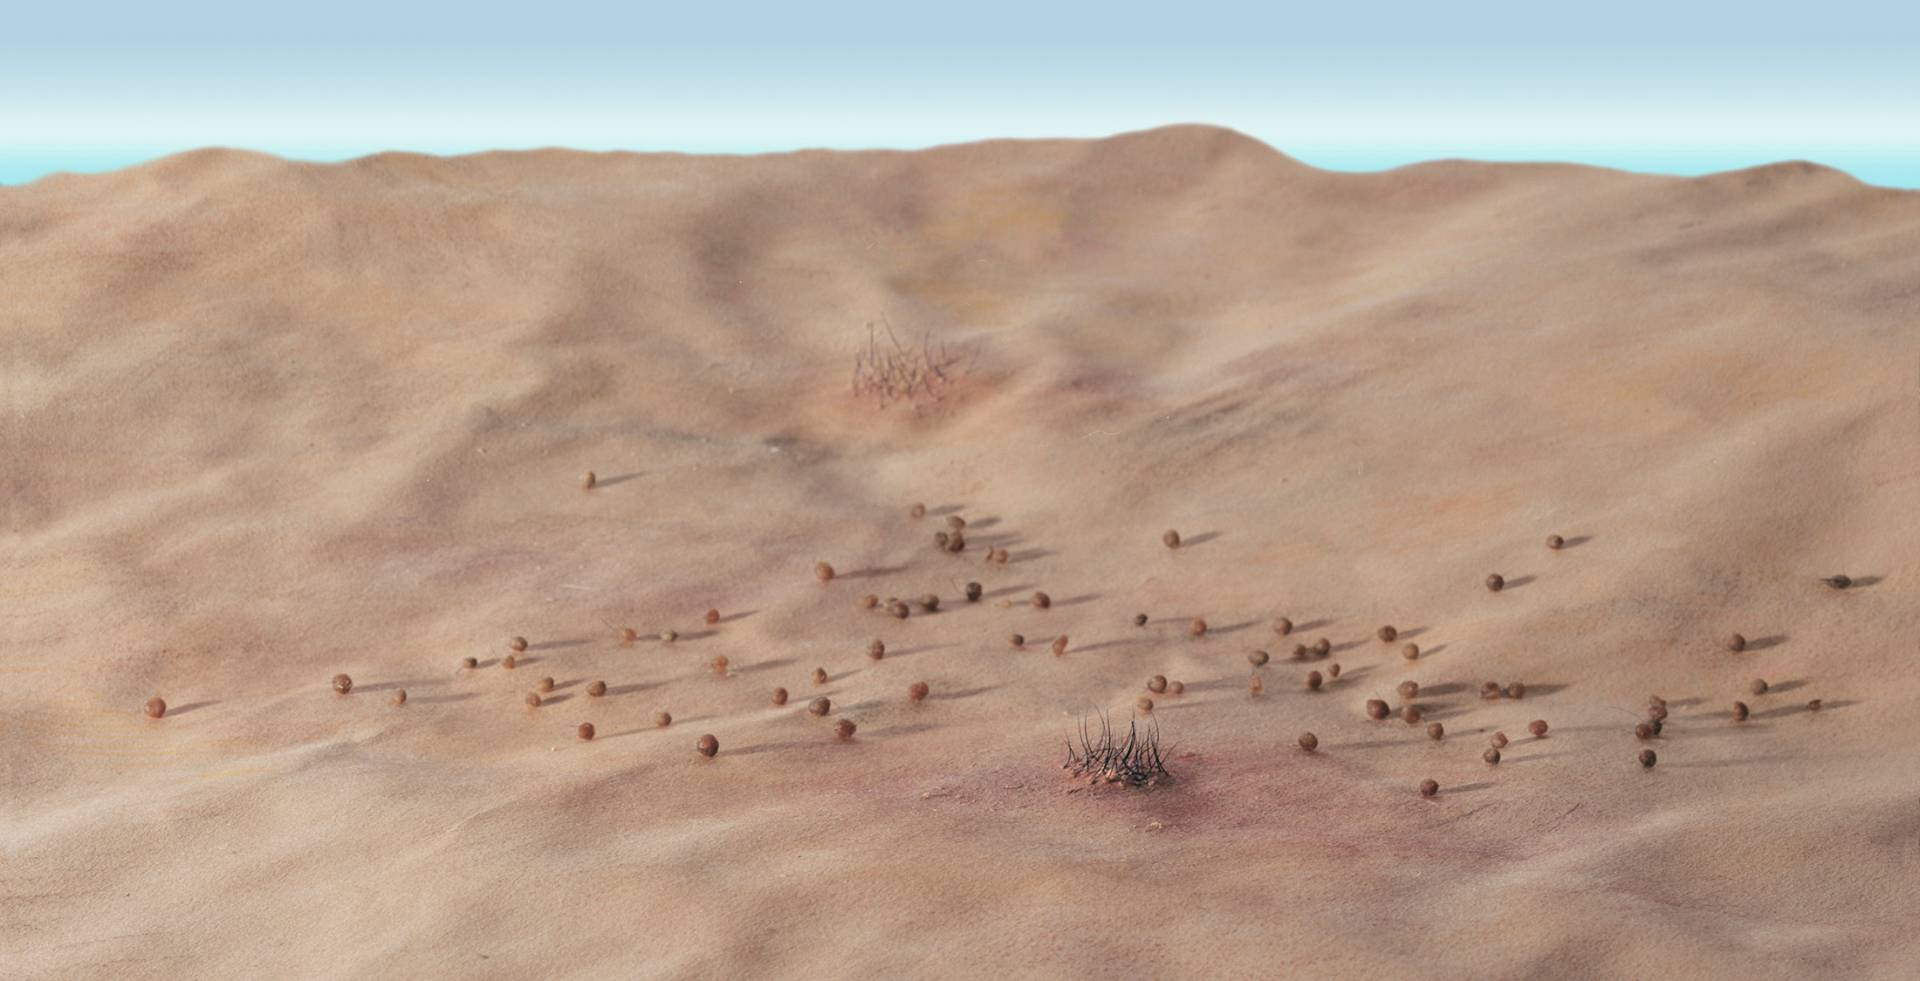 Desert hills with small spheres